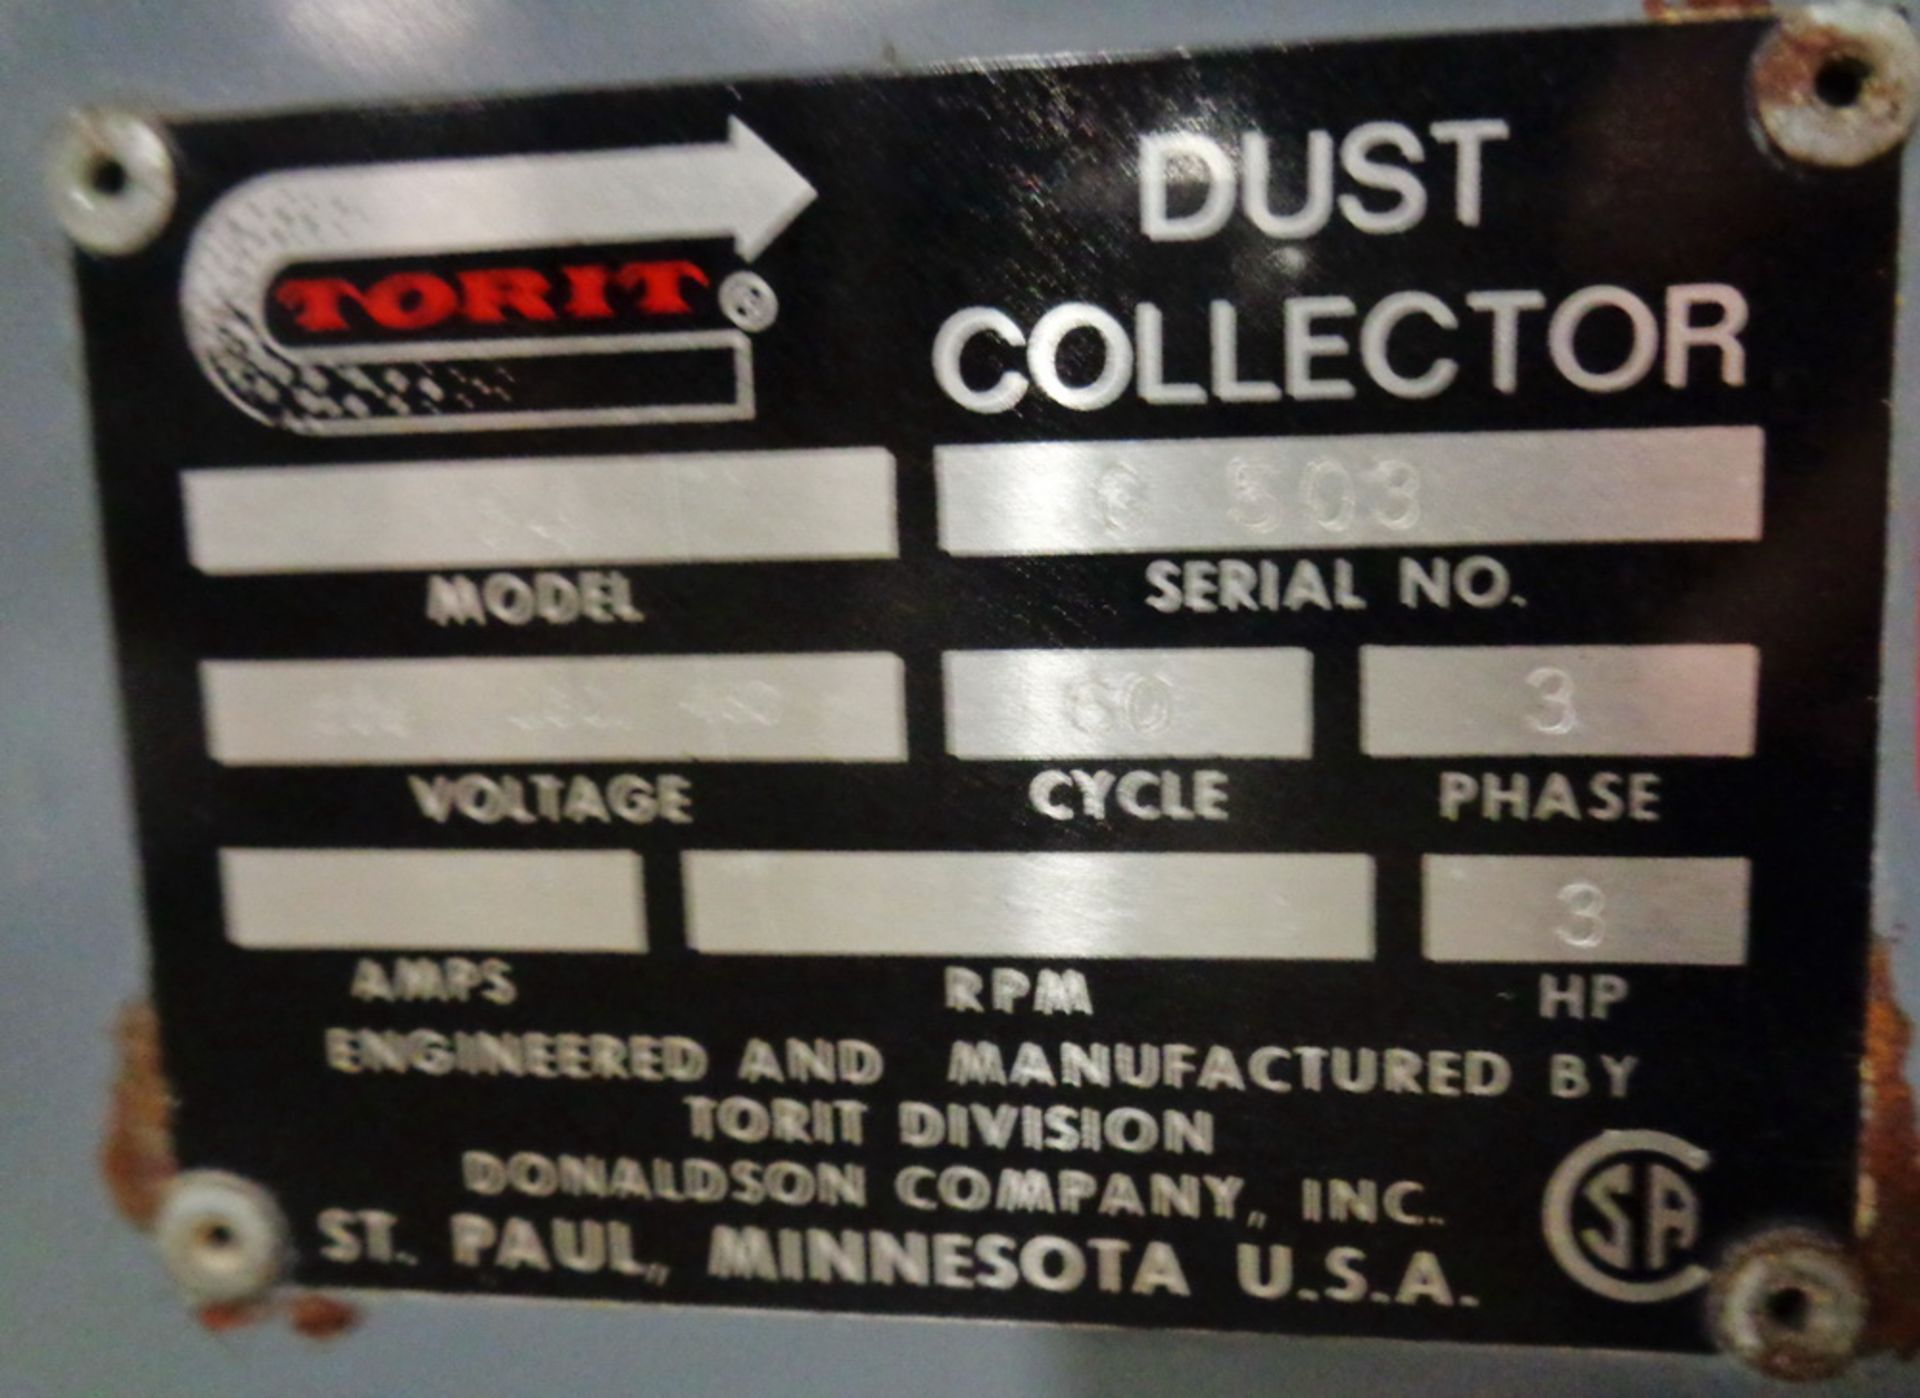 Lot 160 - Torit Cabinet type Dust Collector, Model 84